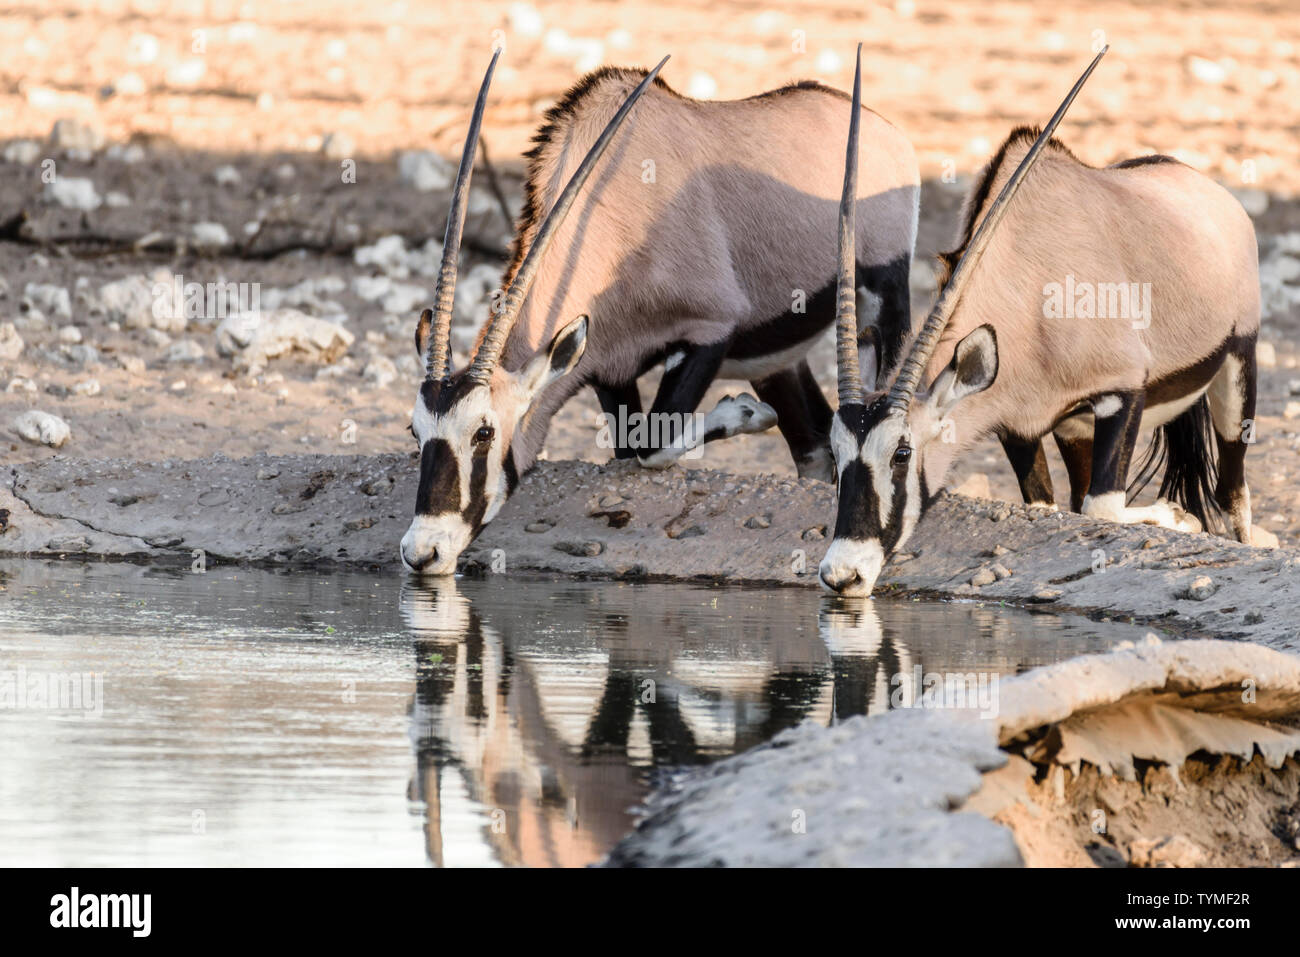 Gemsbok, a large oryx antelope, and the national symbol of Namibia, hunted mainly for their spectacular horns. - Stock Image